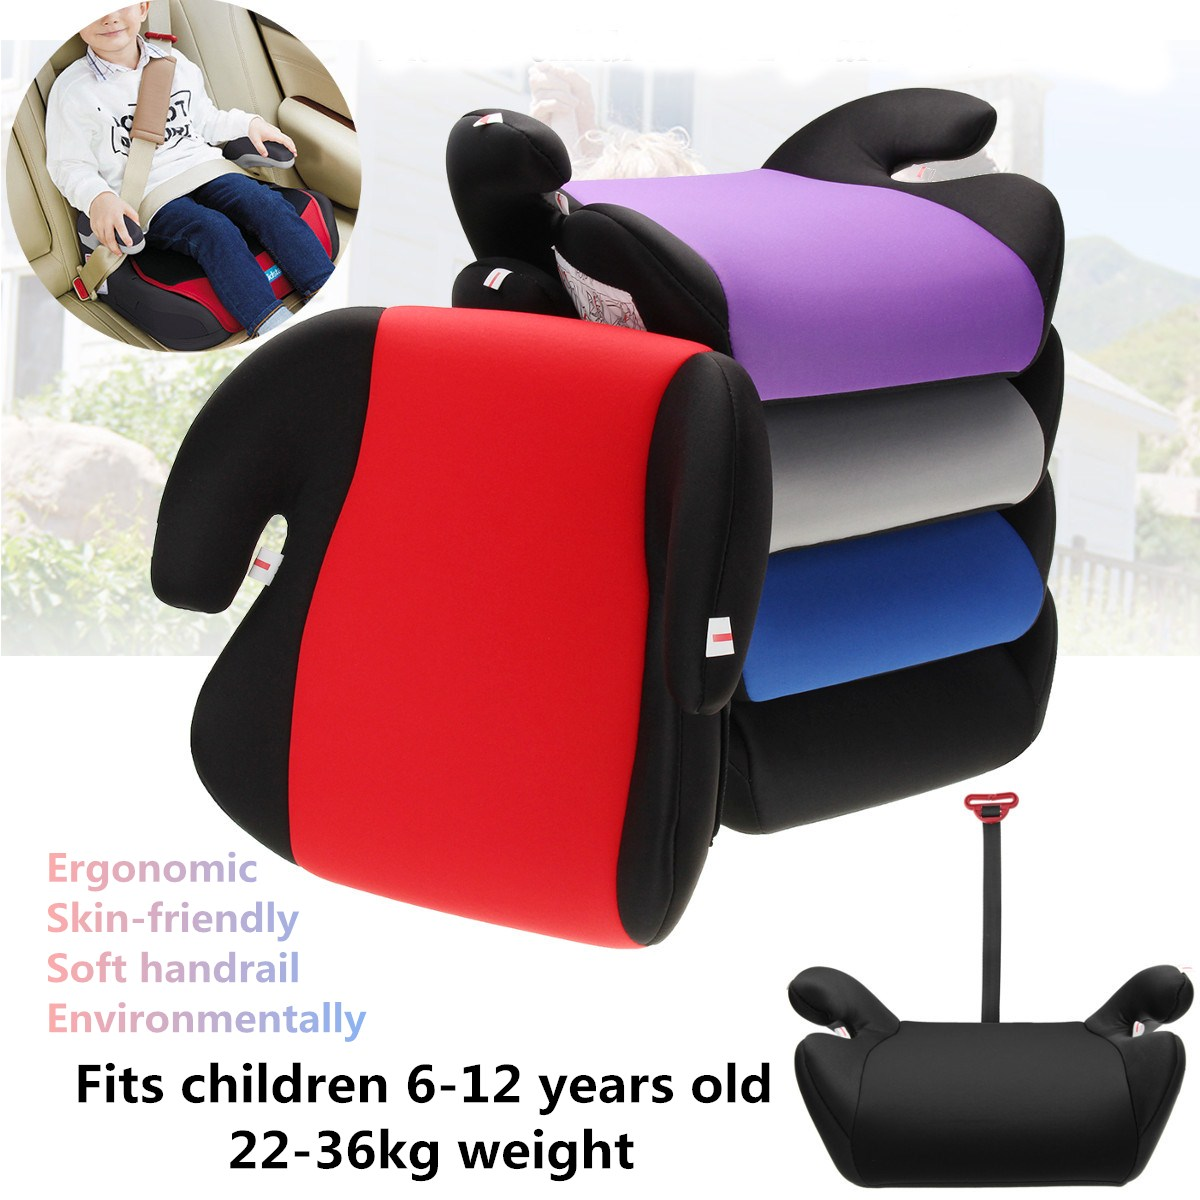 Car Booster Seat Safe Sturdy Kids Children Child Baby Increased Seat Pad Fits 6-12 Years Old